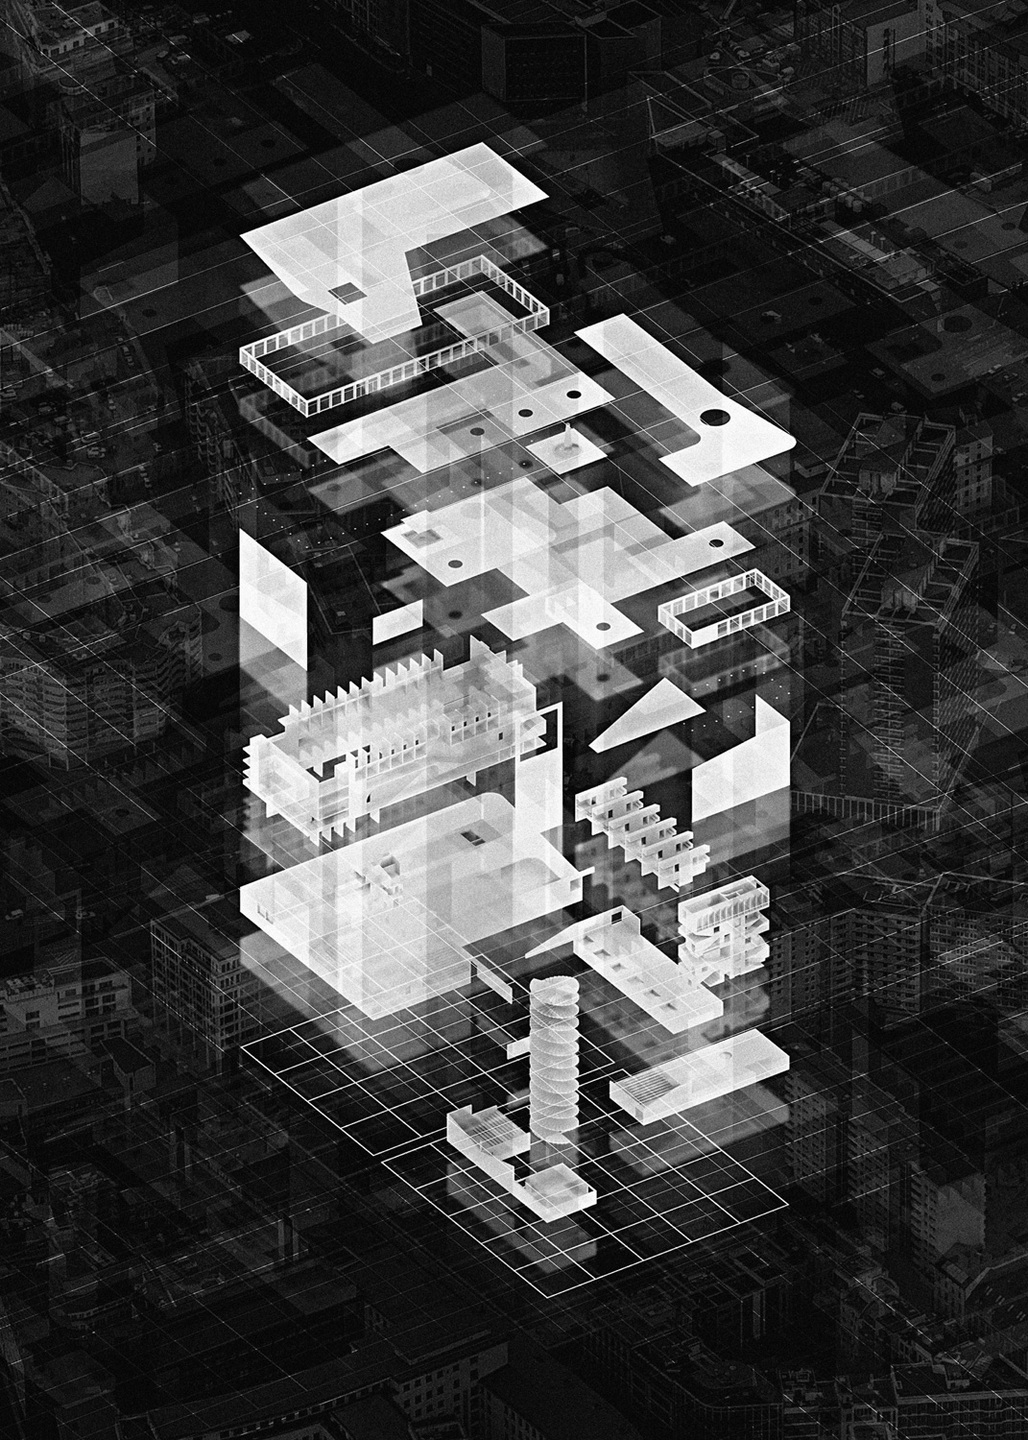 2015 RIBA Presidents Medals Students Awards - SILVER MEDAL (best design project at Part 2): Finn Wilkie - The Mackintosh School of Architecture at The Glasgow School of Art. | Project: 'The Heteroglossic City: A polemic against critical reconstruction in Berlin'.